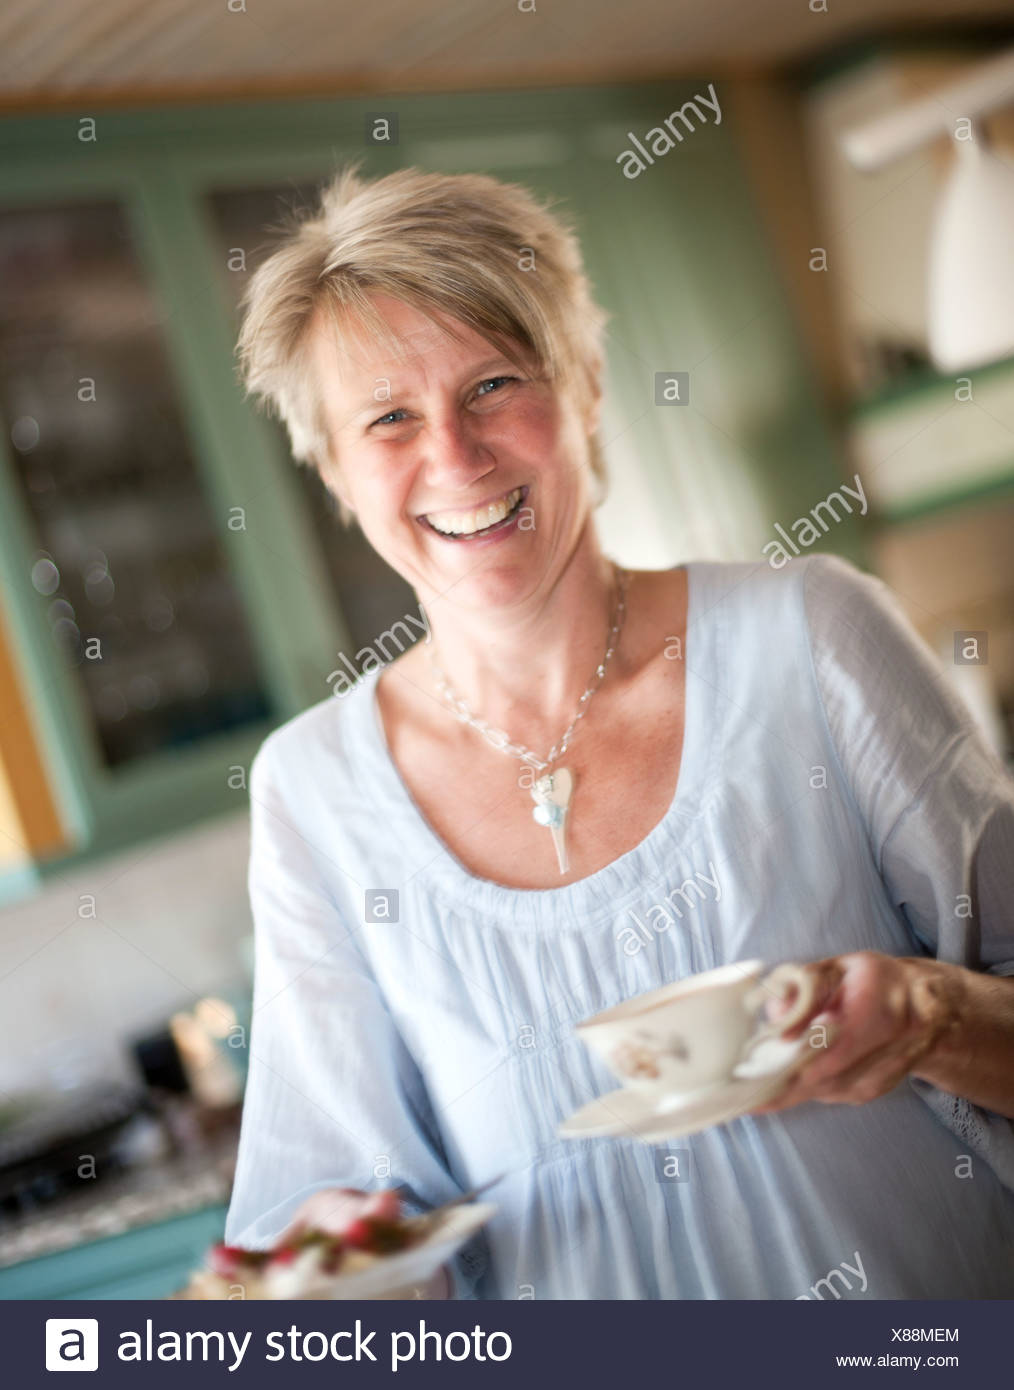 Portrait of woman carrying tea cups and smiling - Stock Image